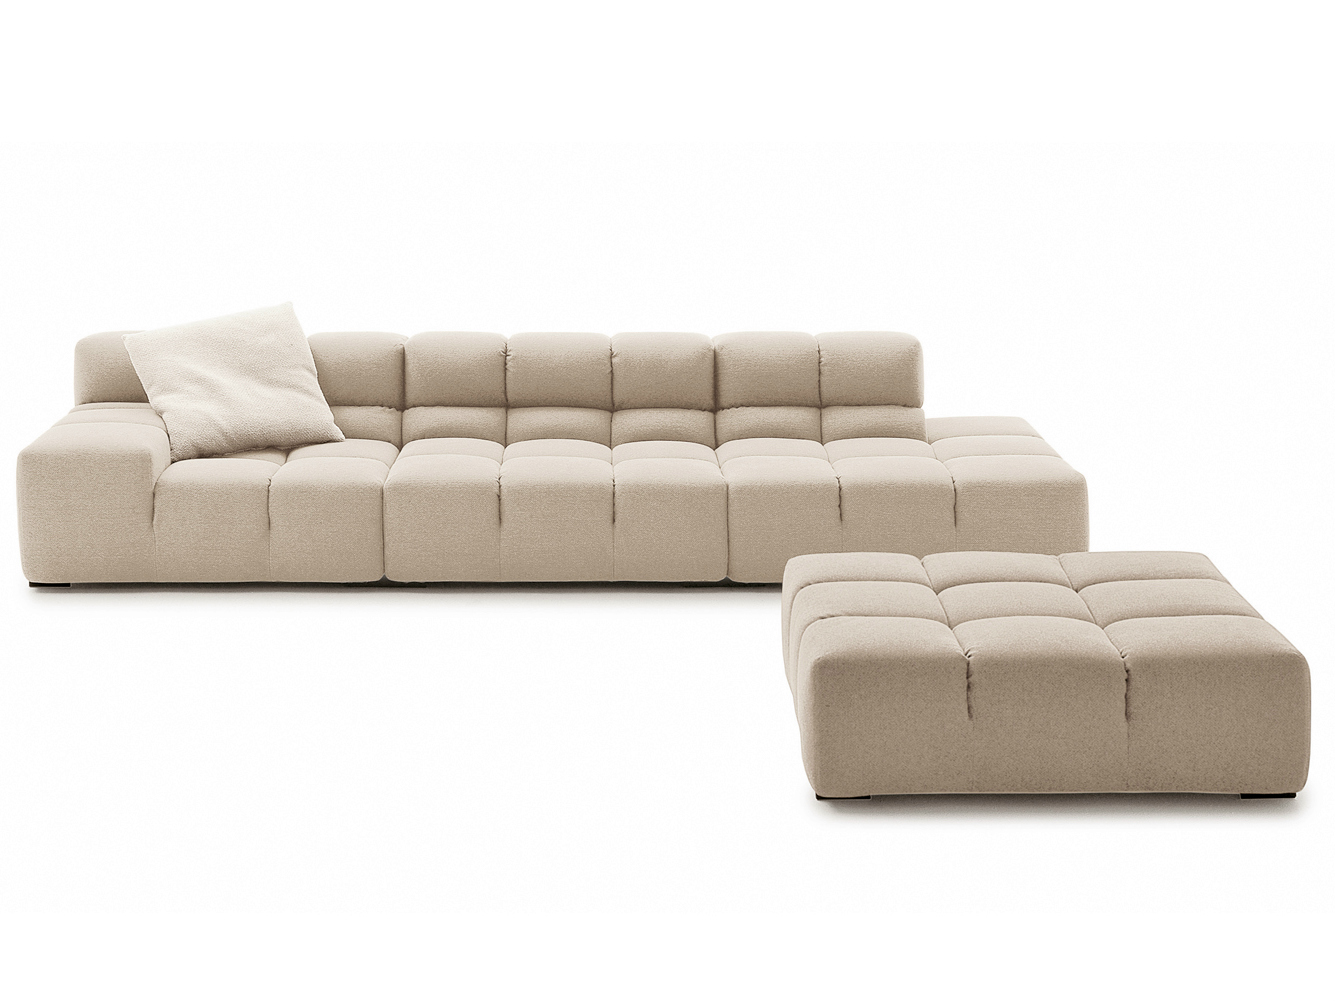 sectional upholstered fabric sofa tufty time collection by